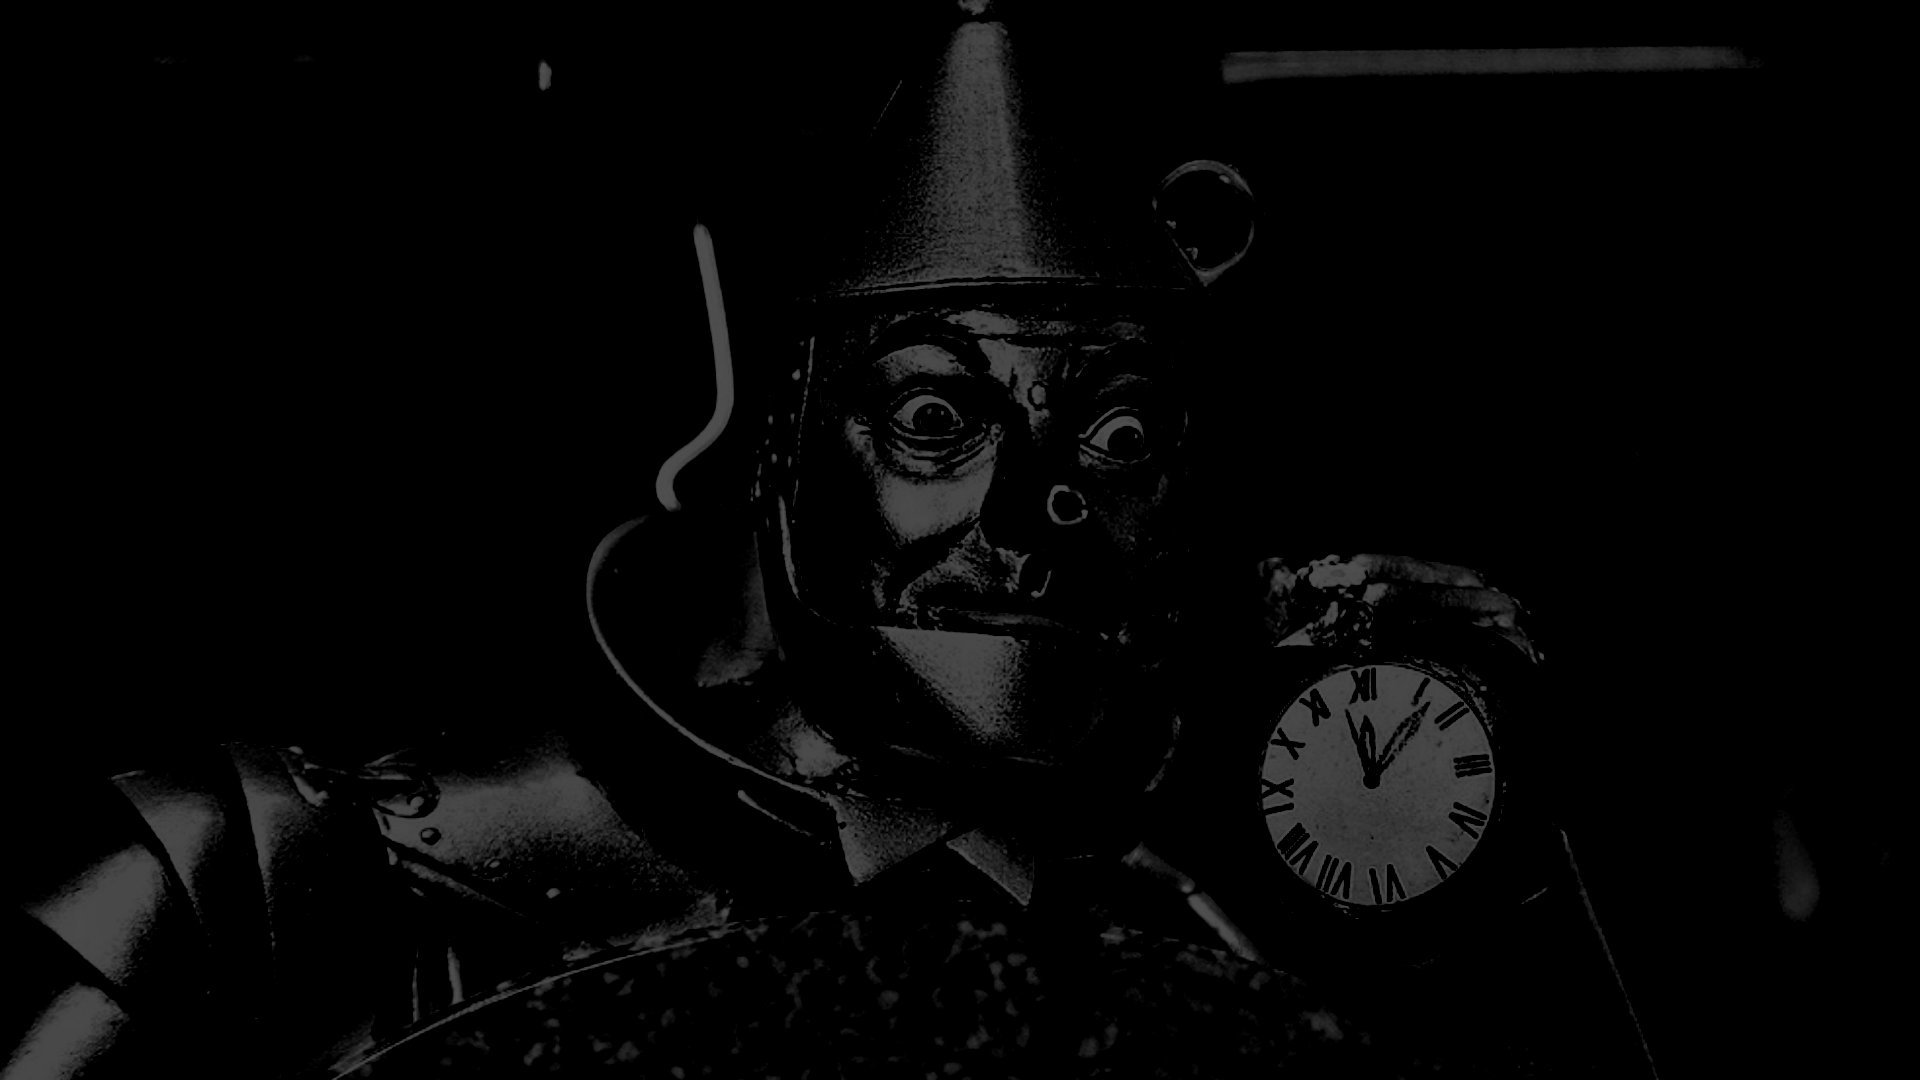 Horror Tinman Hd Wallpaper Background Image 1920x1080